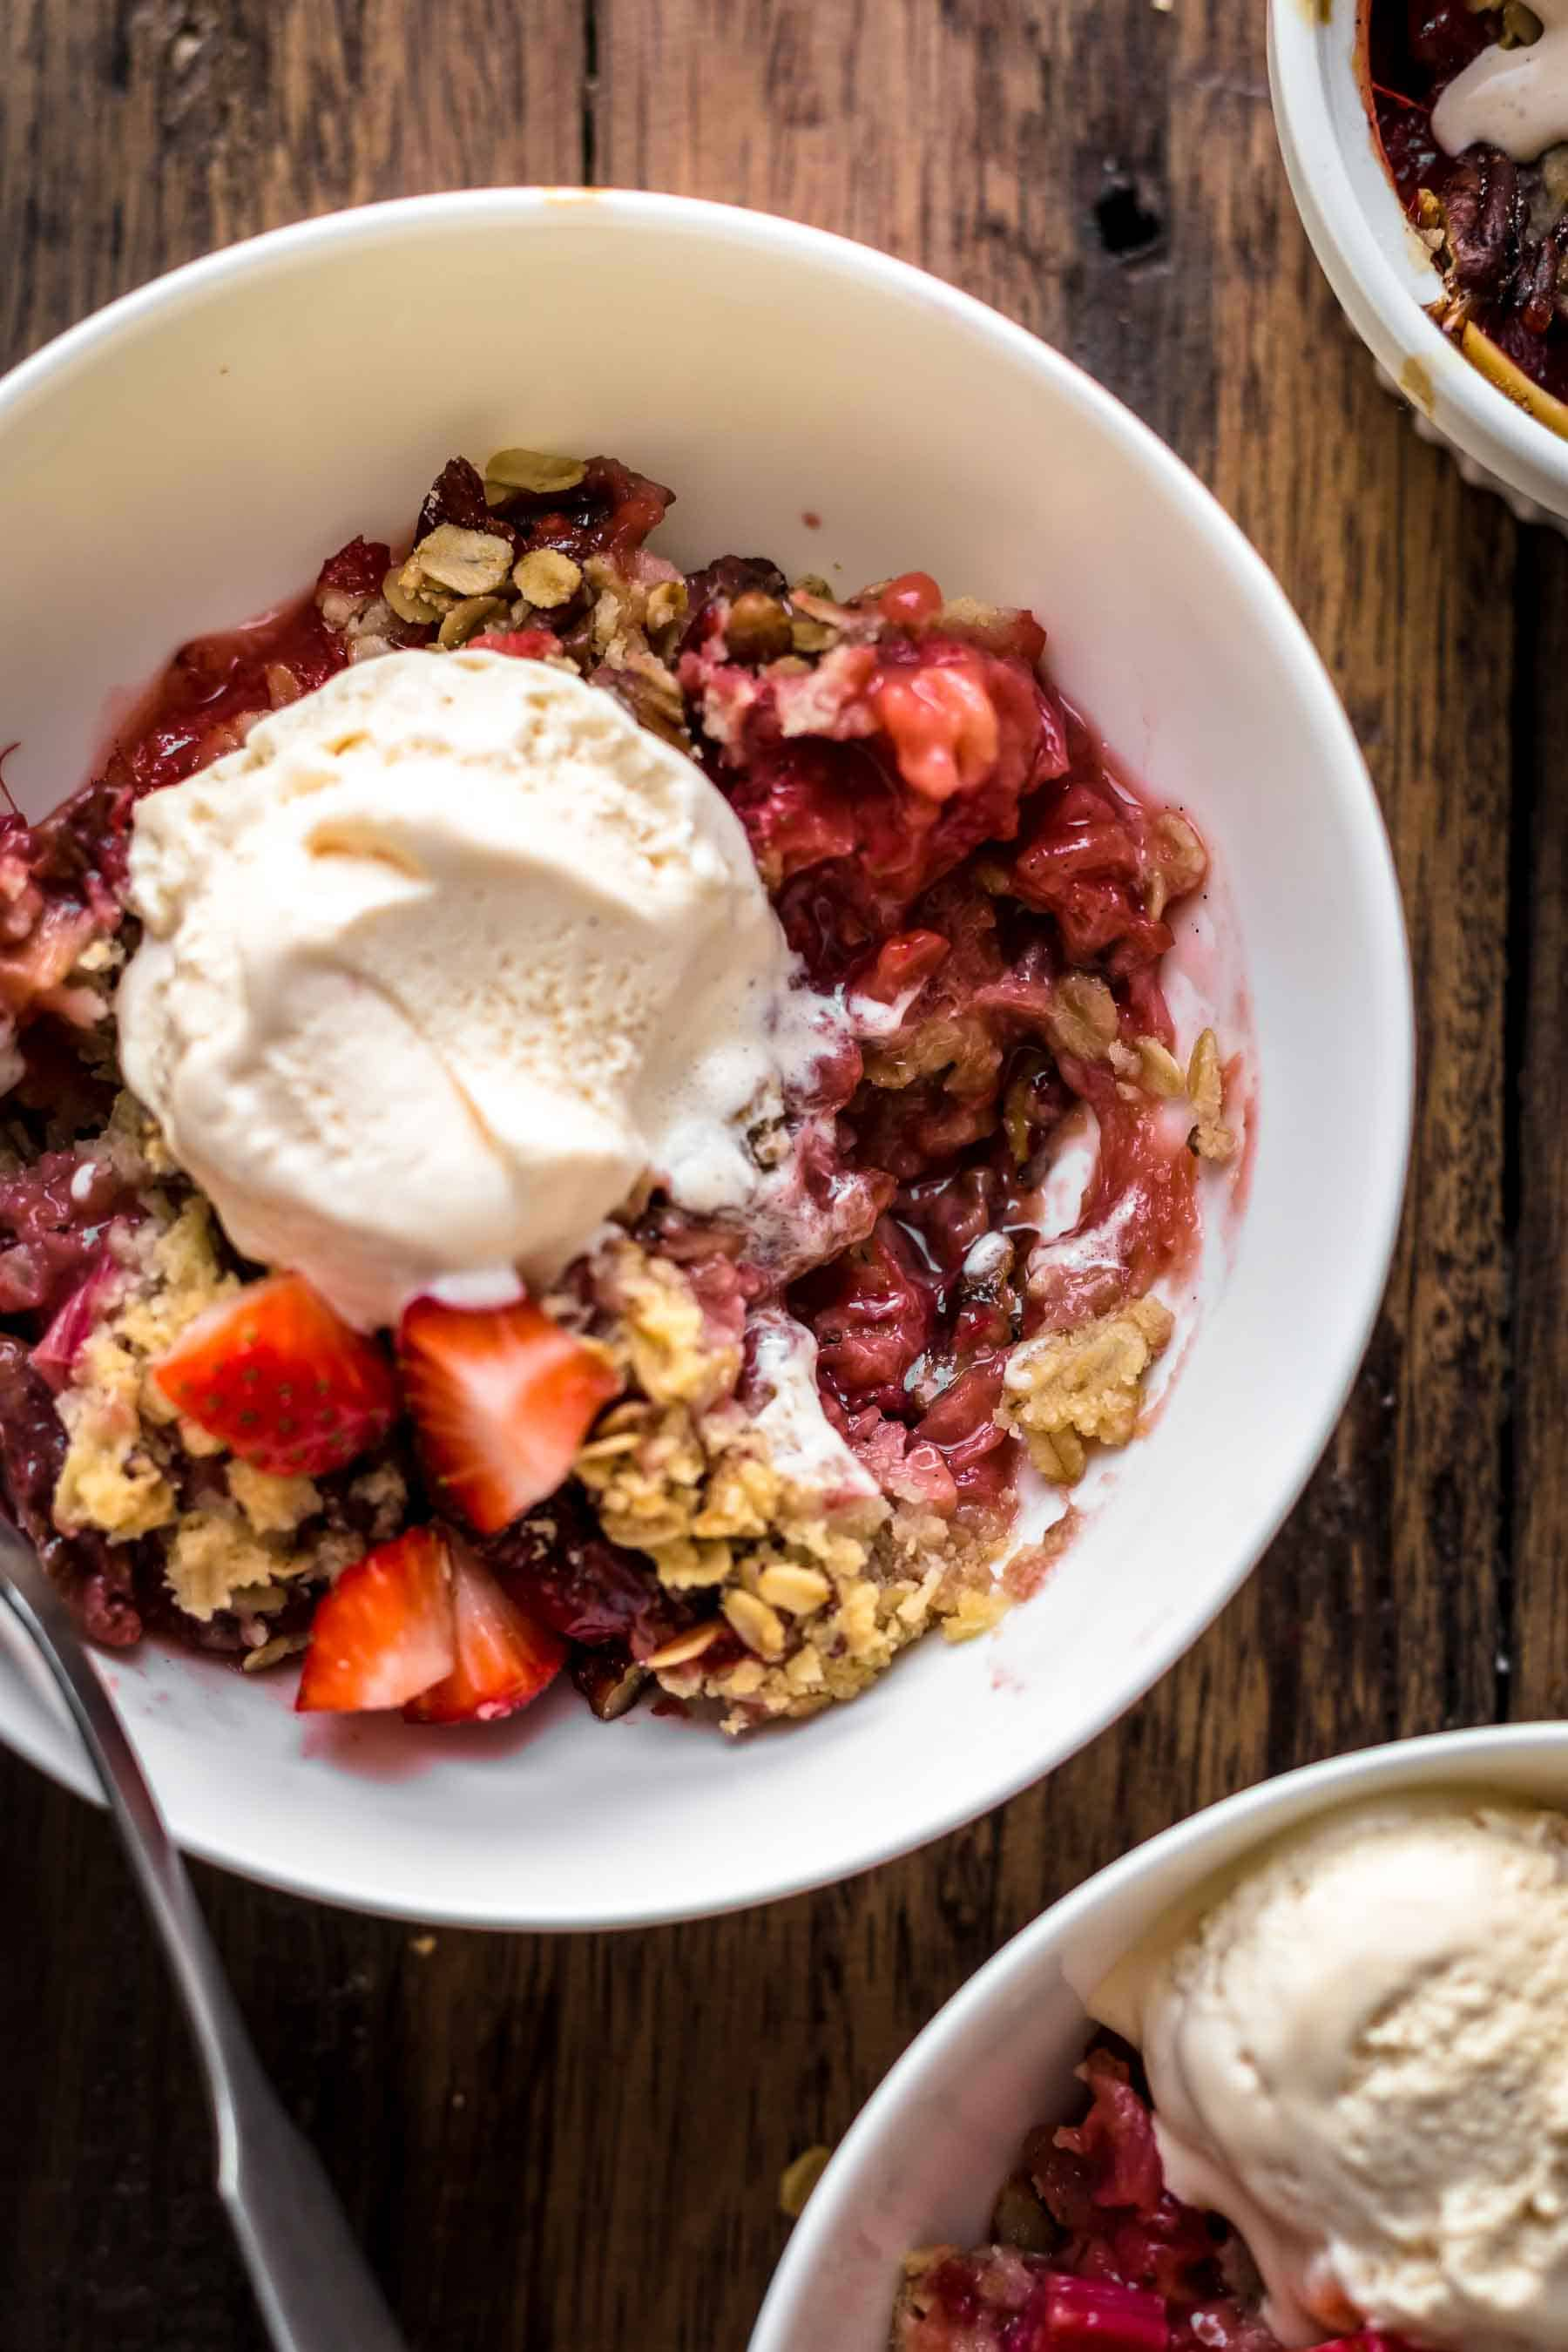 Strawberry Rhubarb Crisp with melted ice cream and spoon in white bowl